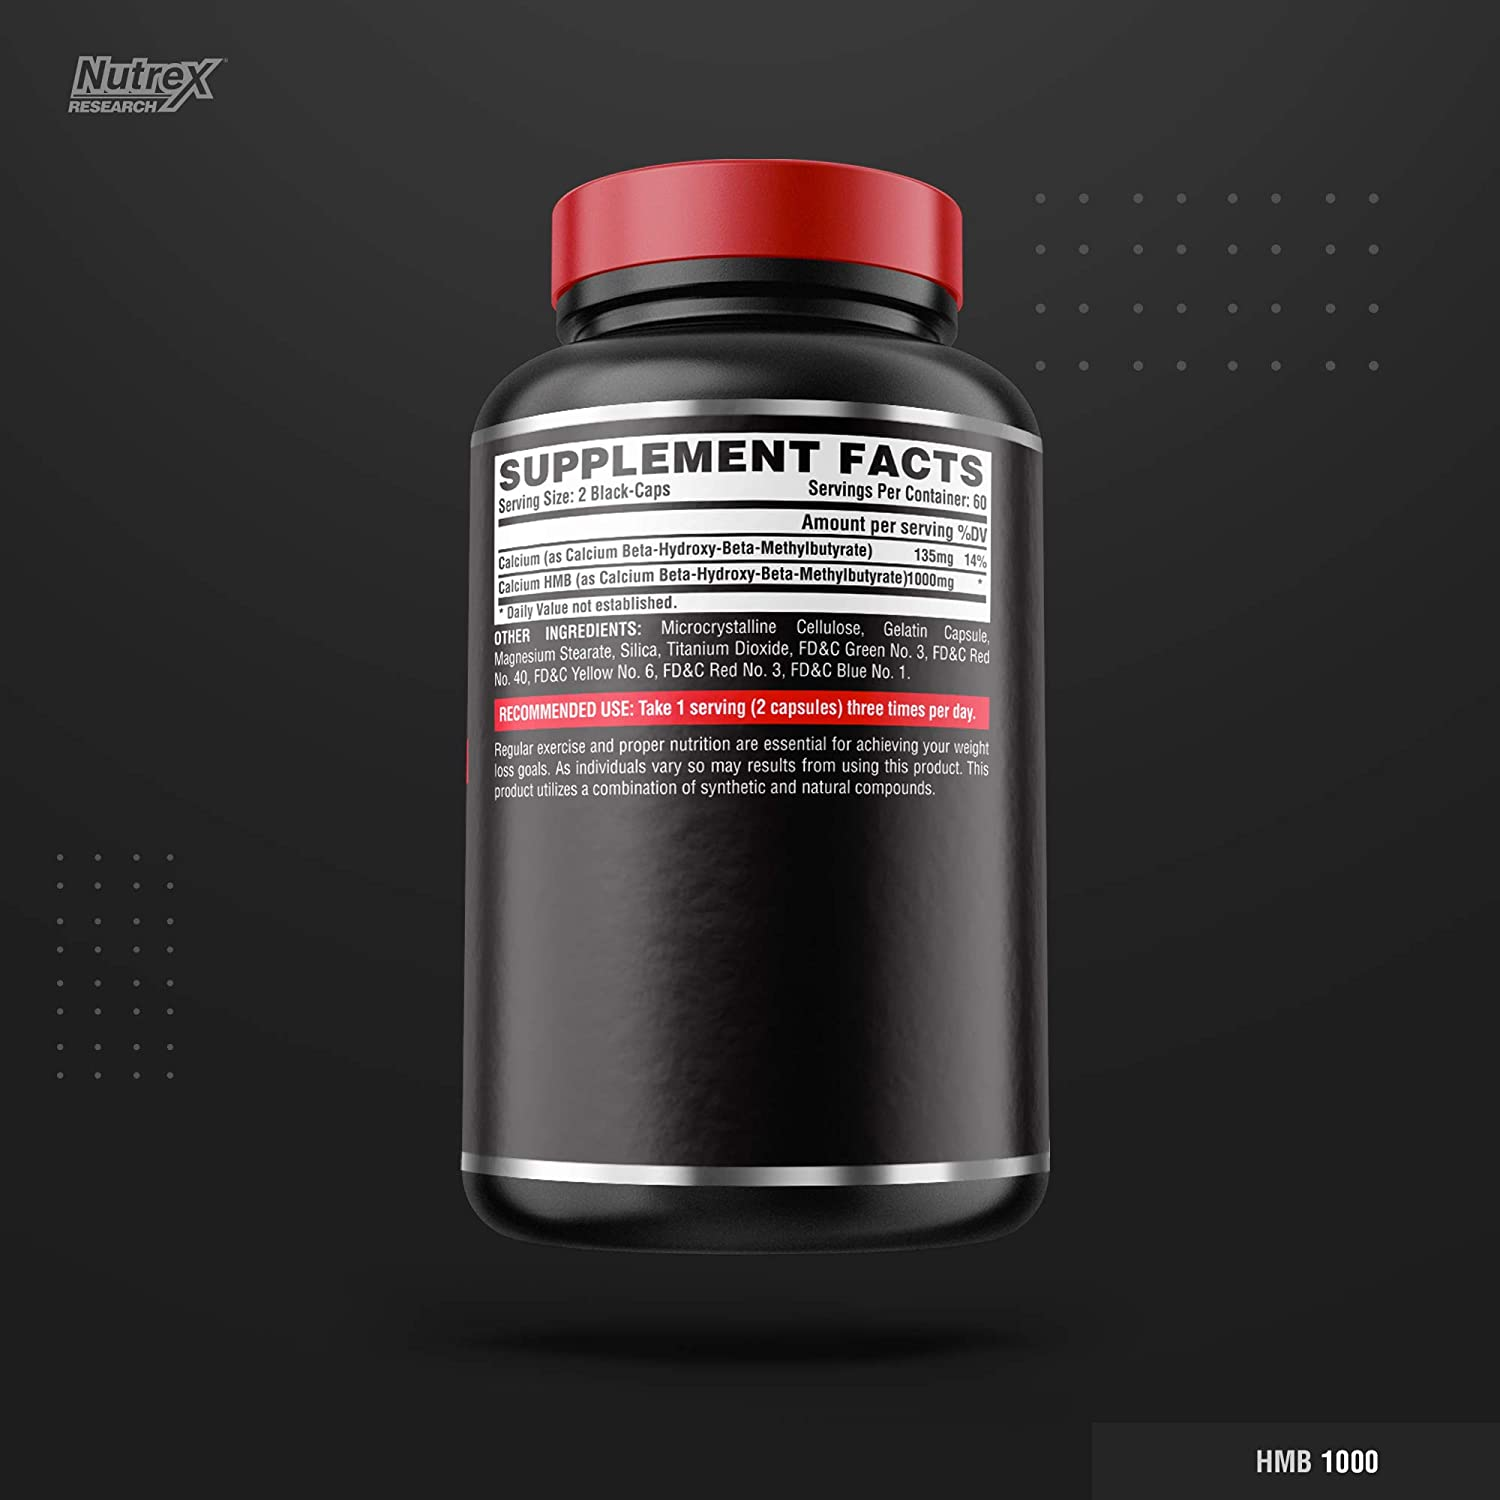 Nutrex HMB 1000 Muscle And Strenght-60Serv.-120Black Caps.